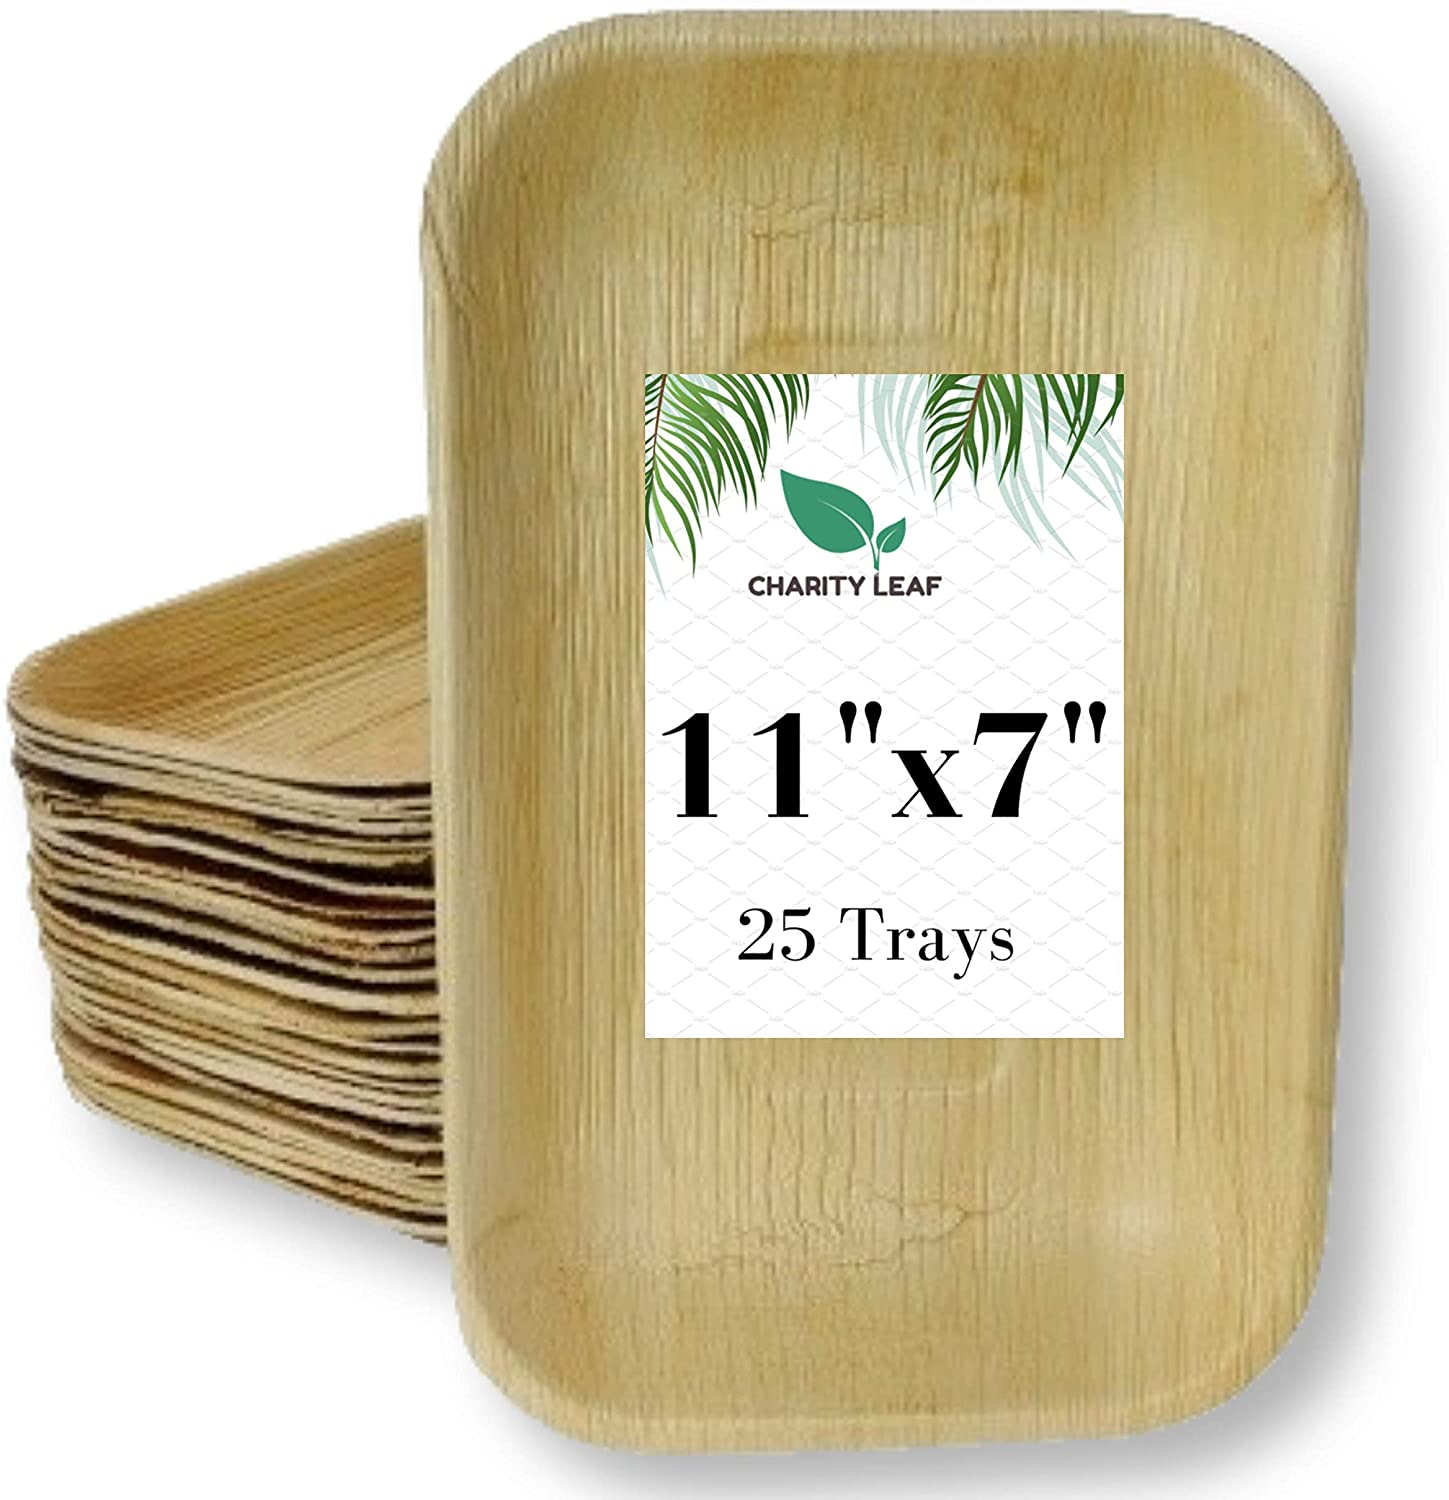 Charity Leaf Disposable Palm Leaf Bamboo Like Rectangle Serving Tray | All Natural and Biodegradable | Weddings, Charcuterie Boards, BBQs, and Parties | 11